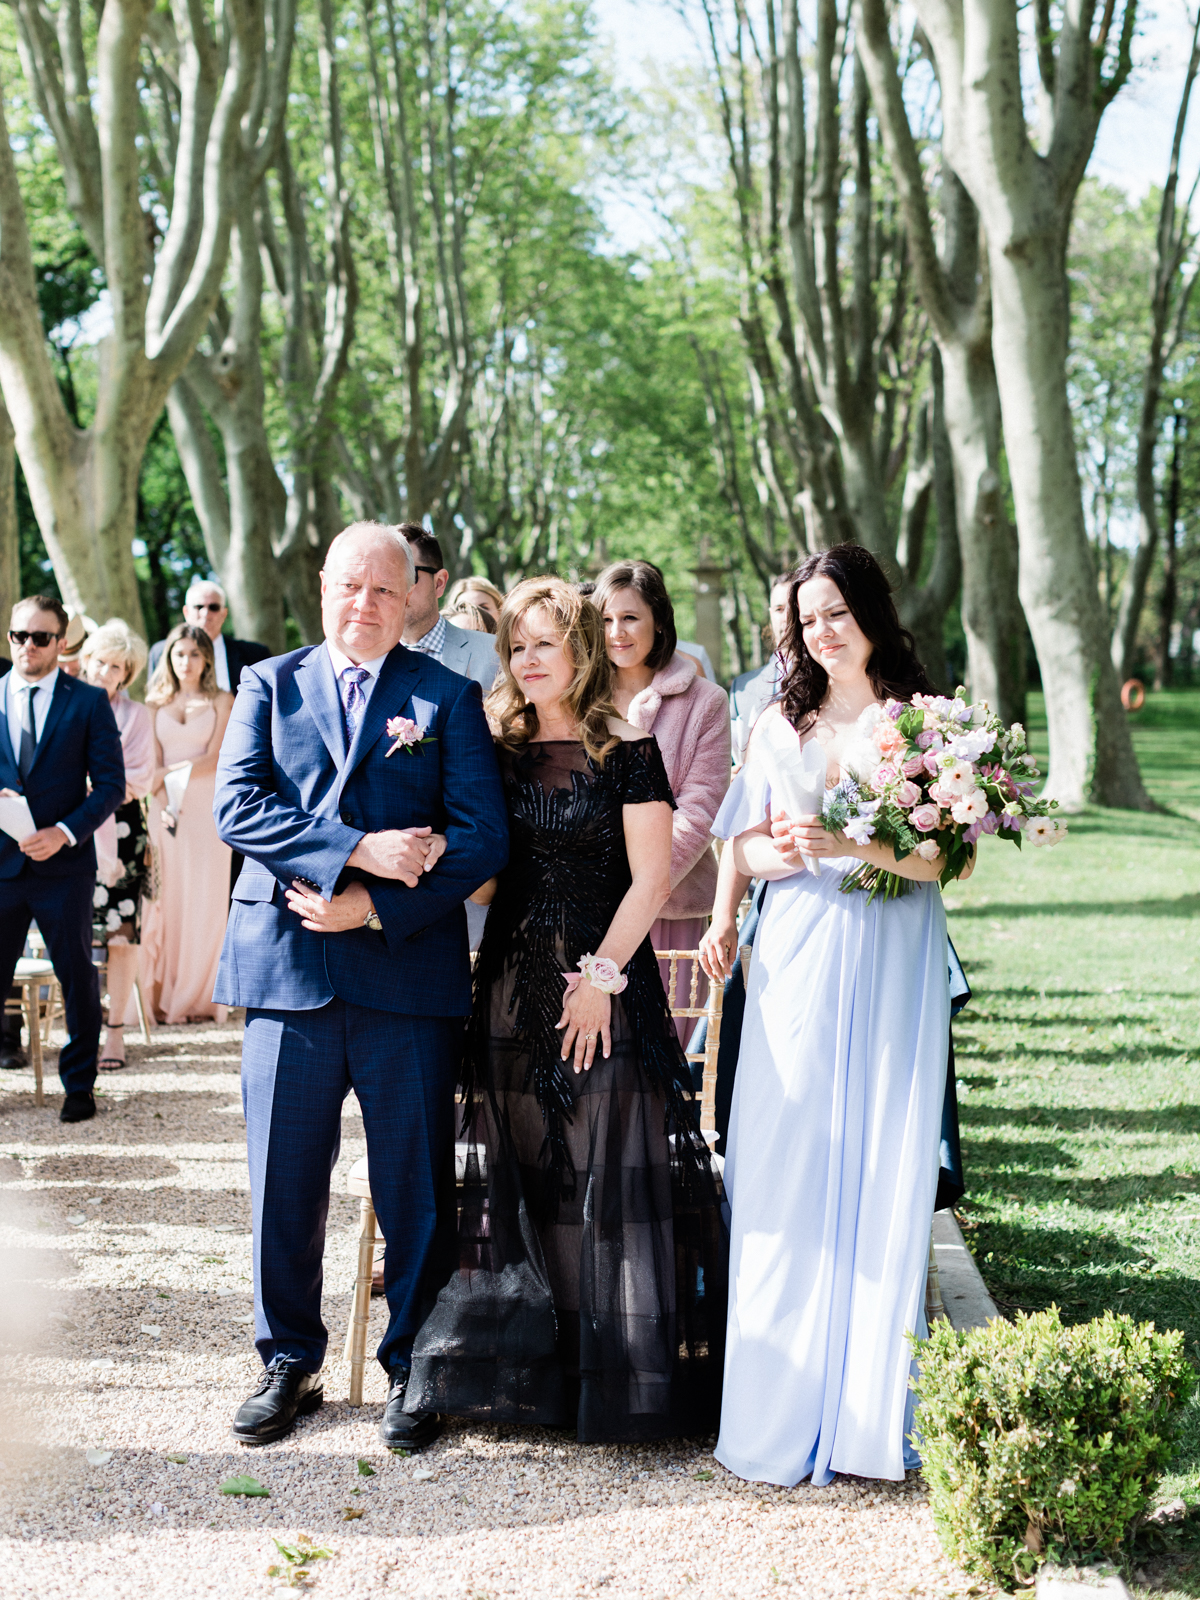 Chateau_de_Tourreau_Provence_Wedding_(c)_Rory_Wylie_.jpg-90.jpg